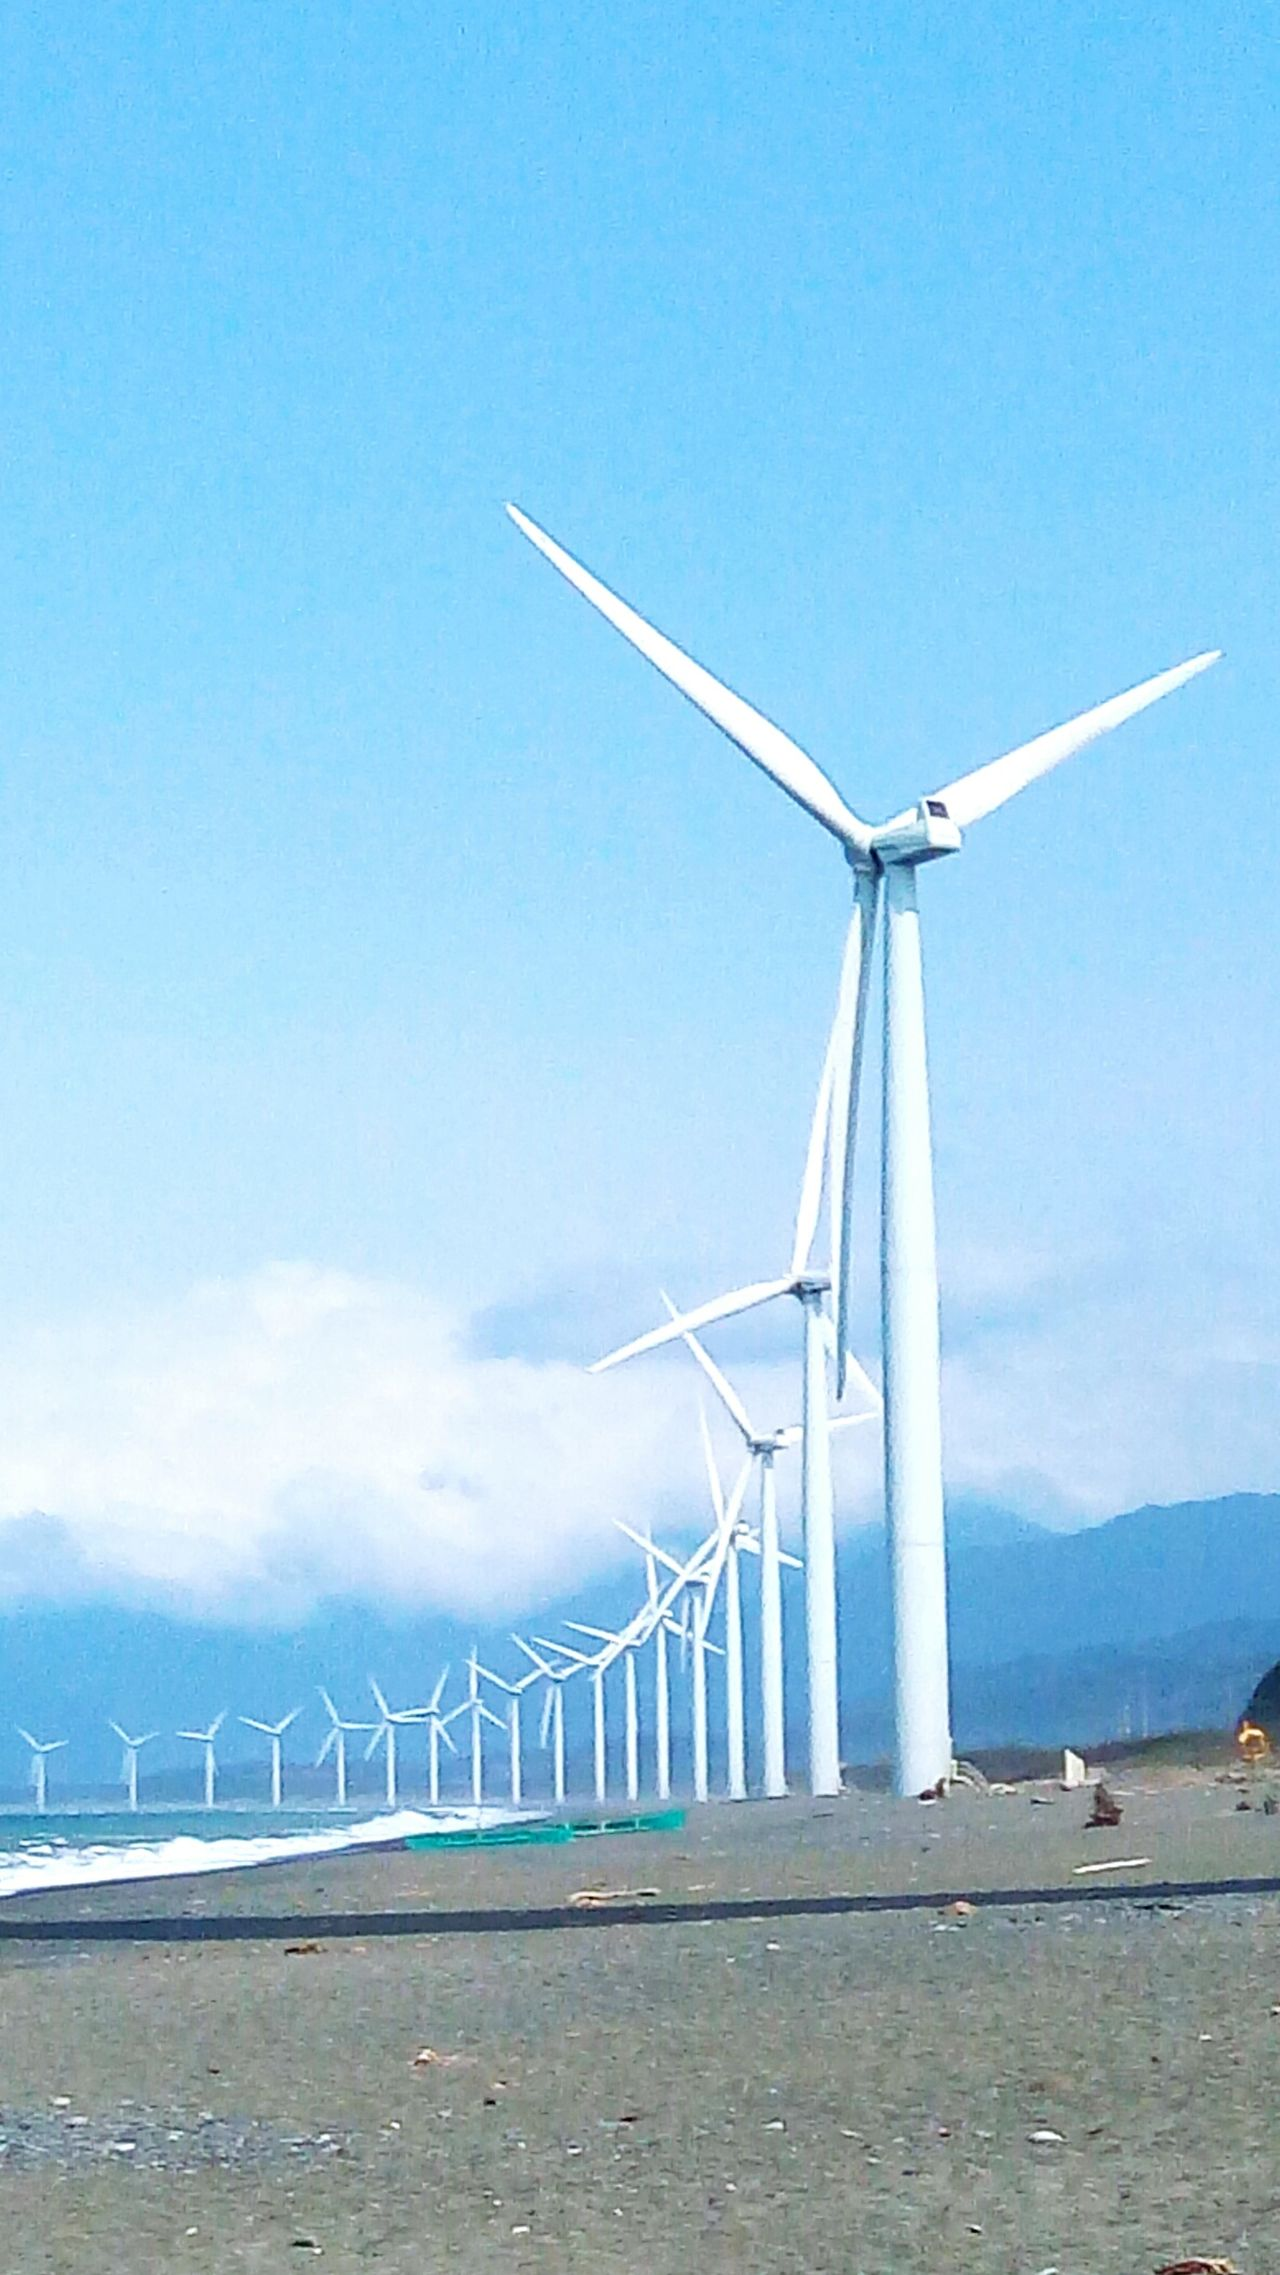 No People Wind Power Wind Turbine Alternative Energy Sky Renewable Energy Nature Day Outdoors Clouds Relax Blue Clouds And Sky Cloudy Skies Clouds & Sky Cloudscape Sea Travel Having A Good Time Vacations Sea And Sky Scenics Beauty In Nature Sunlight